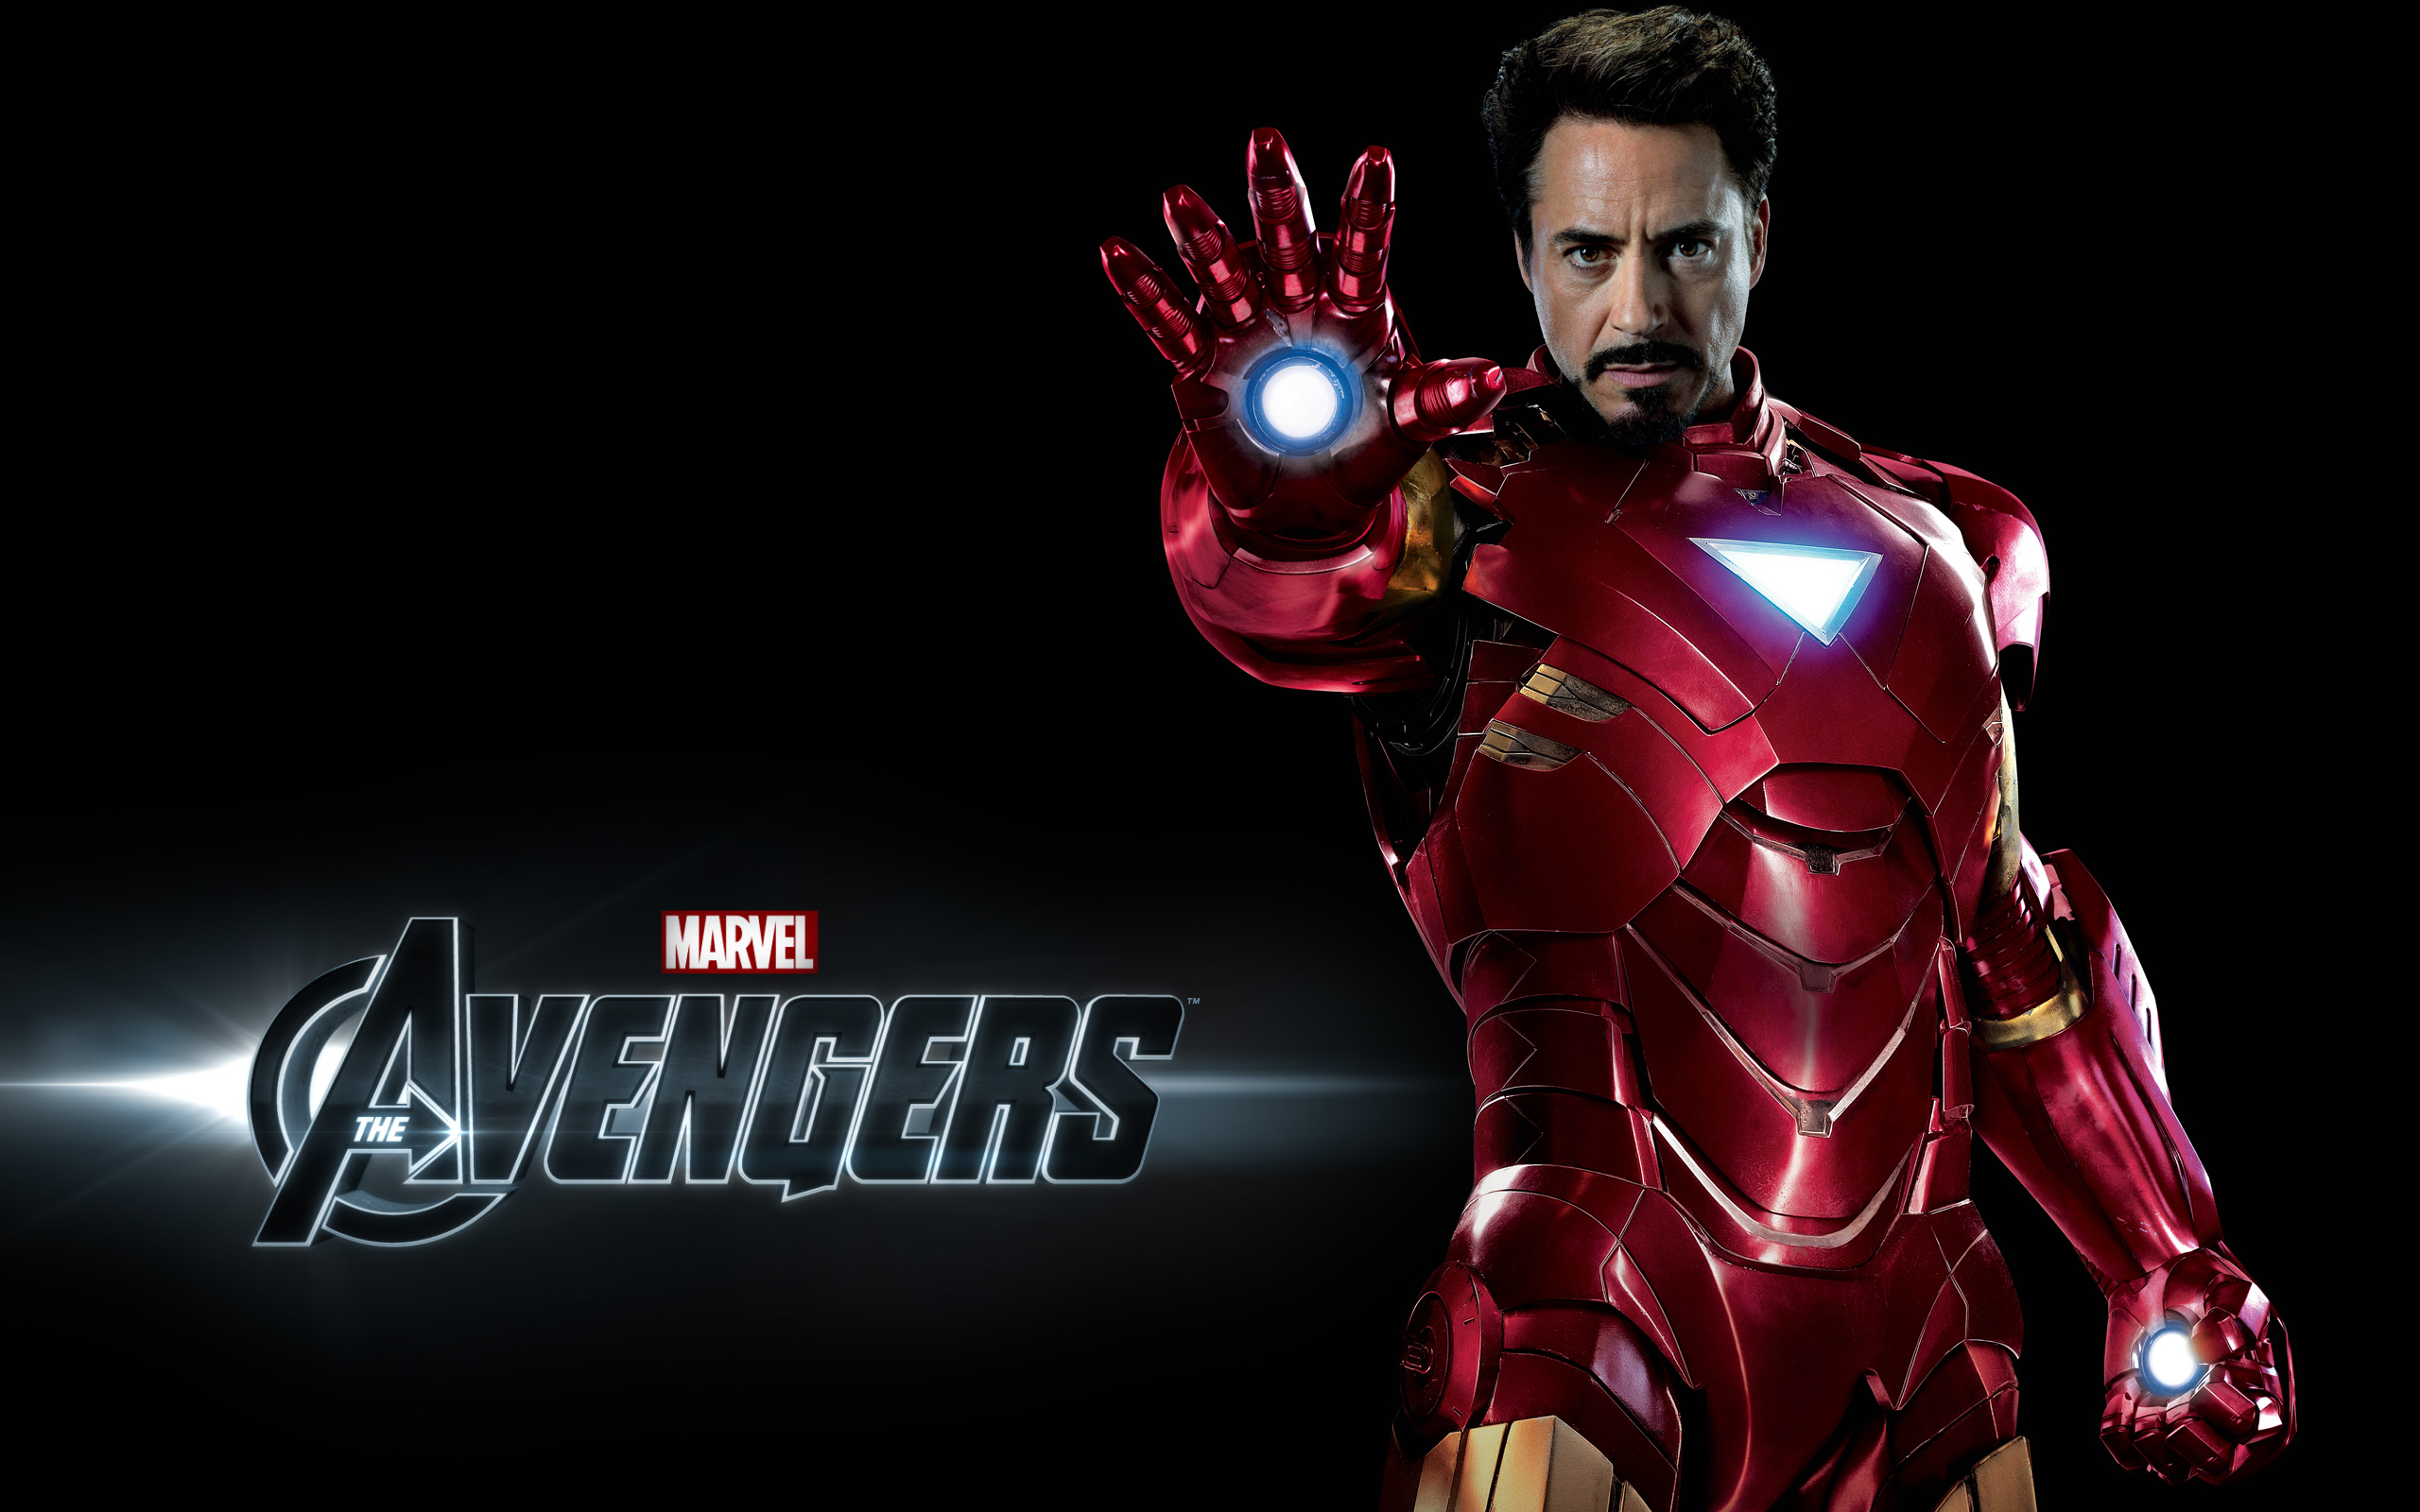 20 Avengers Wallpapers Backgrounds Images Pictures Design